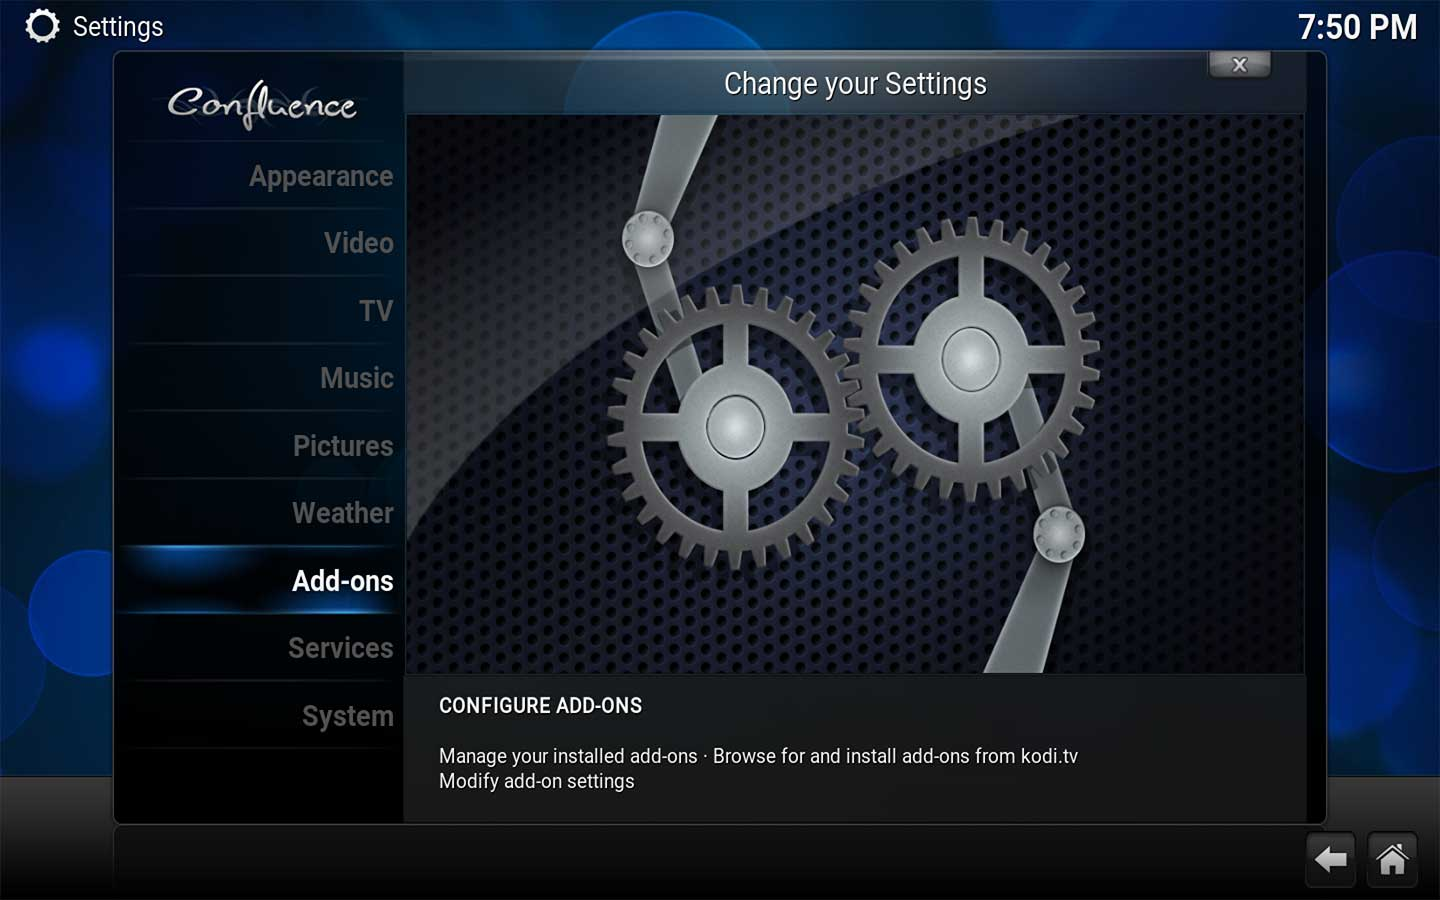 Step 2 to install Phillips Hue in Kodi